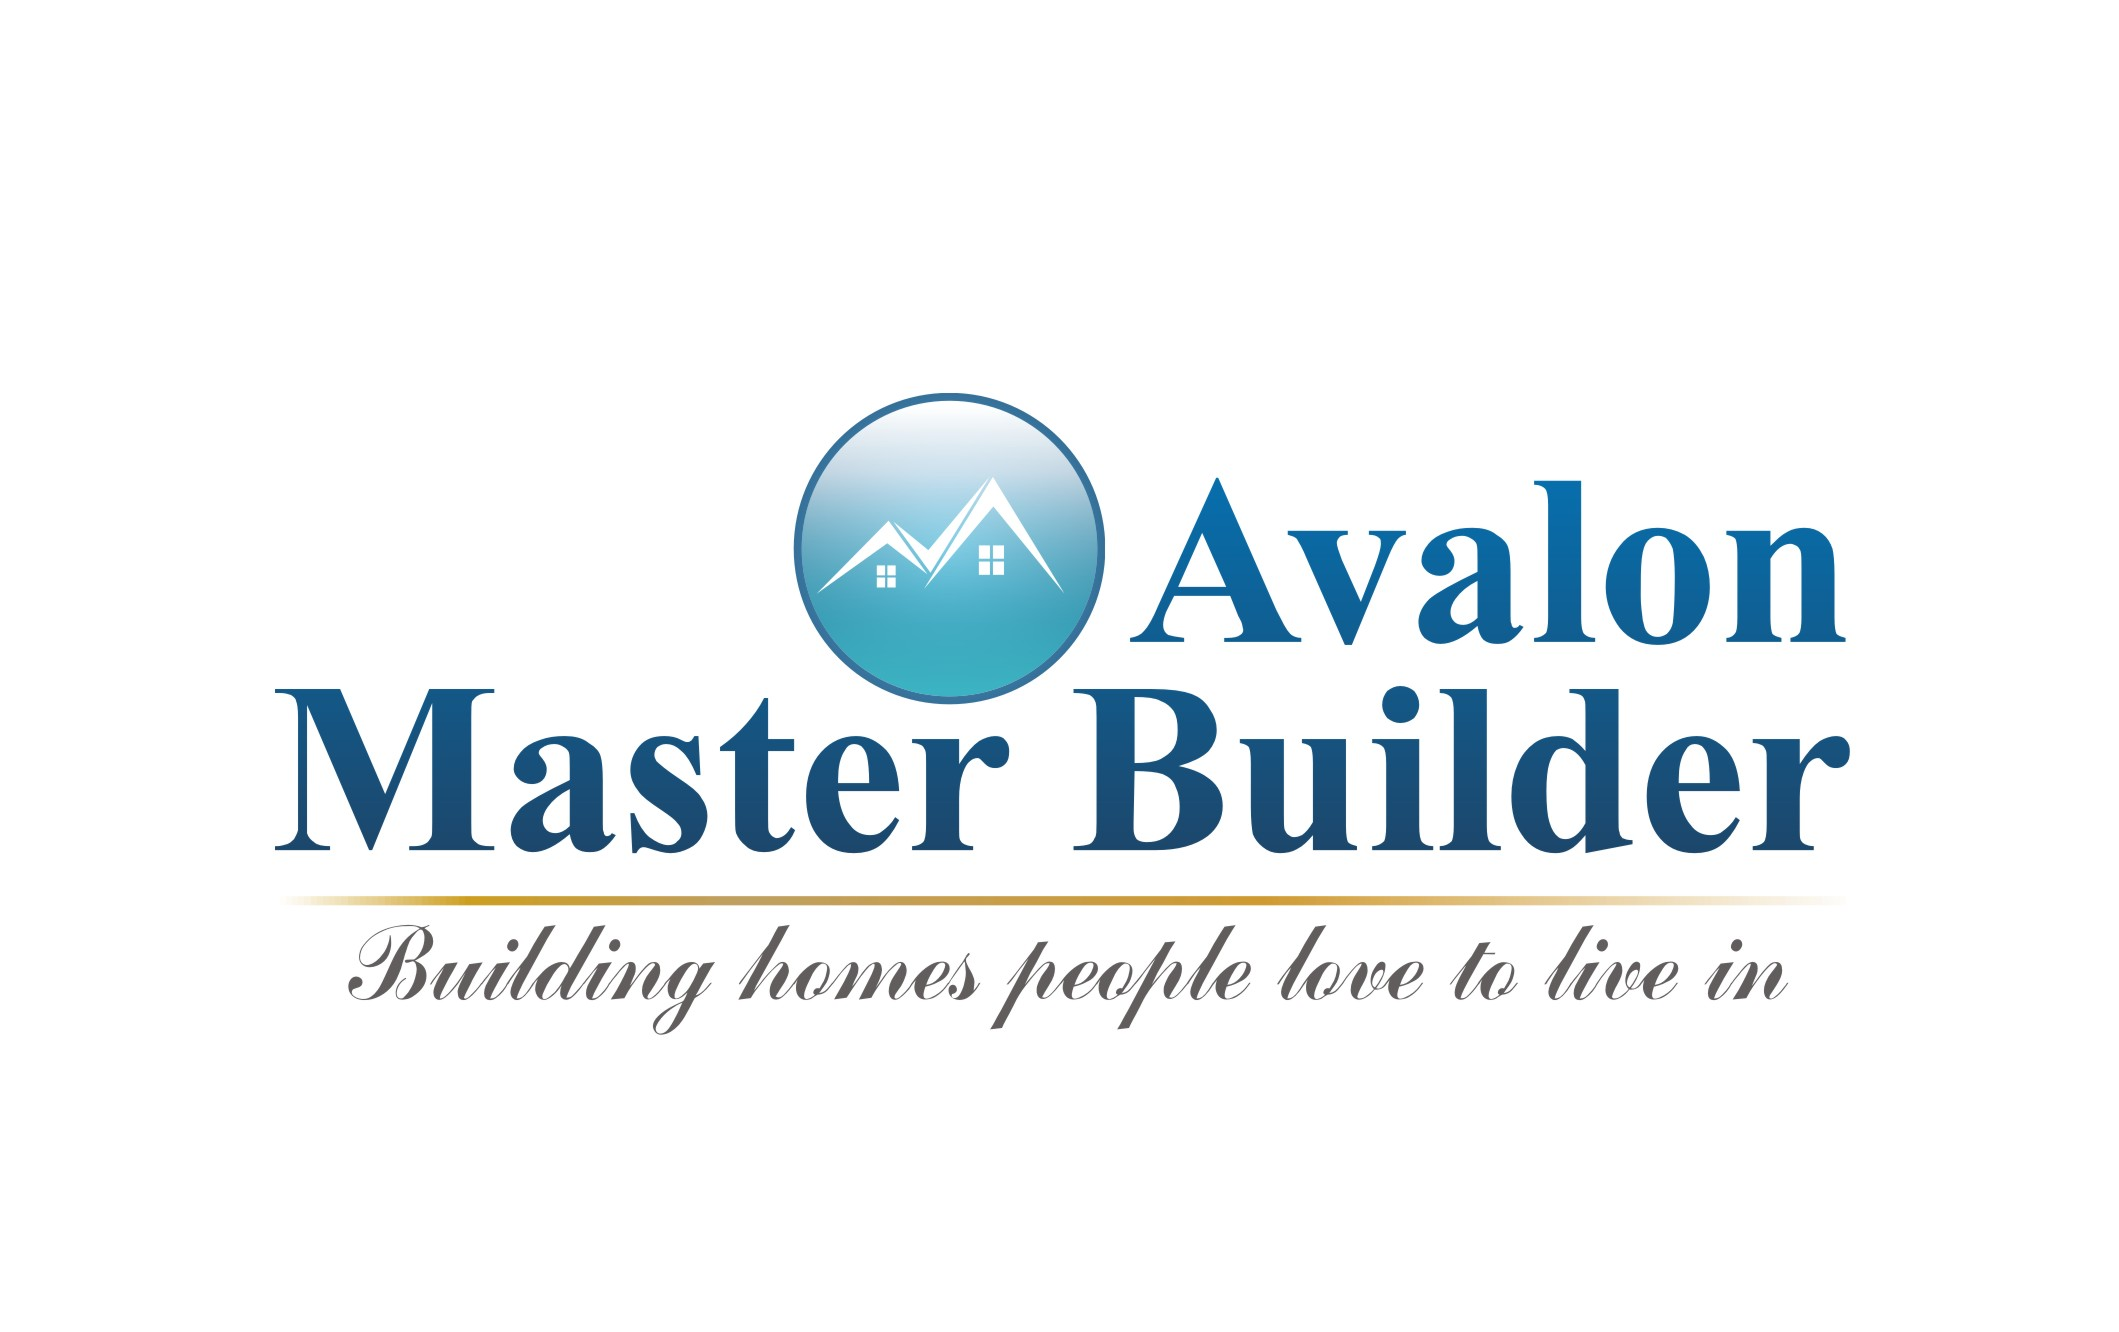 Logo Design by Private User - Entry No. 10 in the Logo Design Contest Avalon Master Builder Logo Design.